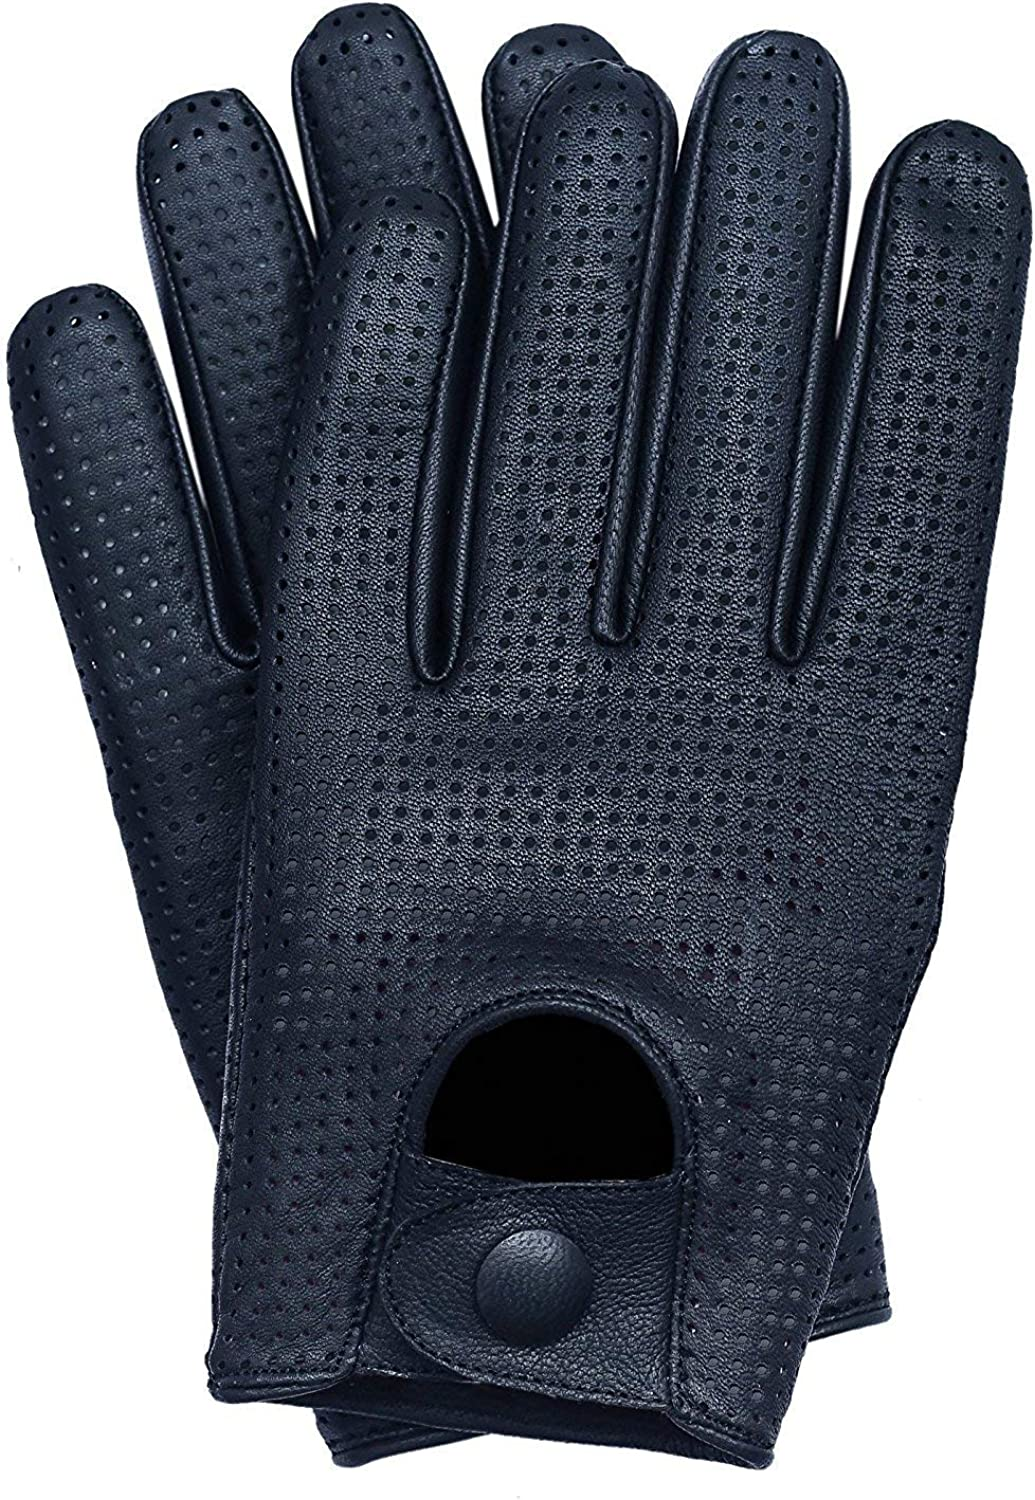 Riparo Mens Touchscreen Texting Mesh Perforated Summer Driving Motorcycle Leather Gloves